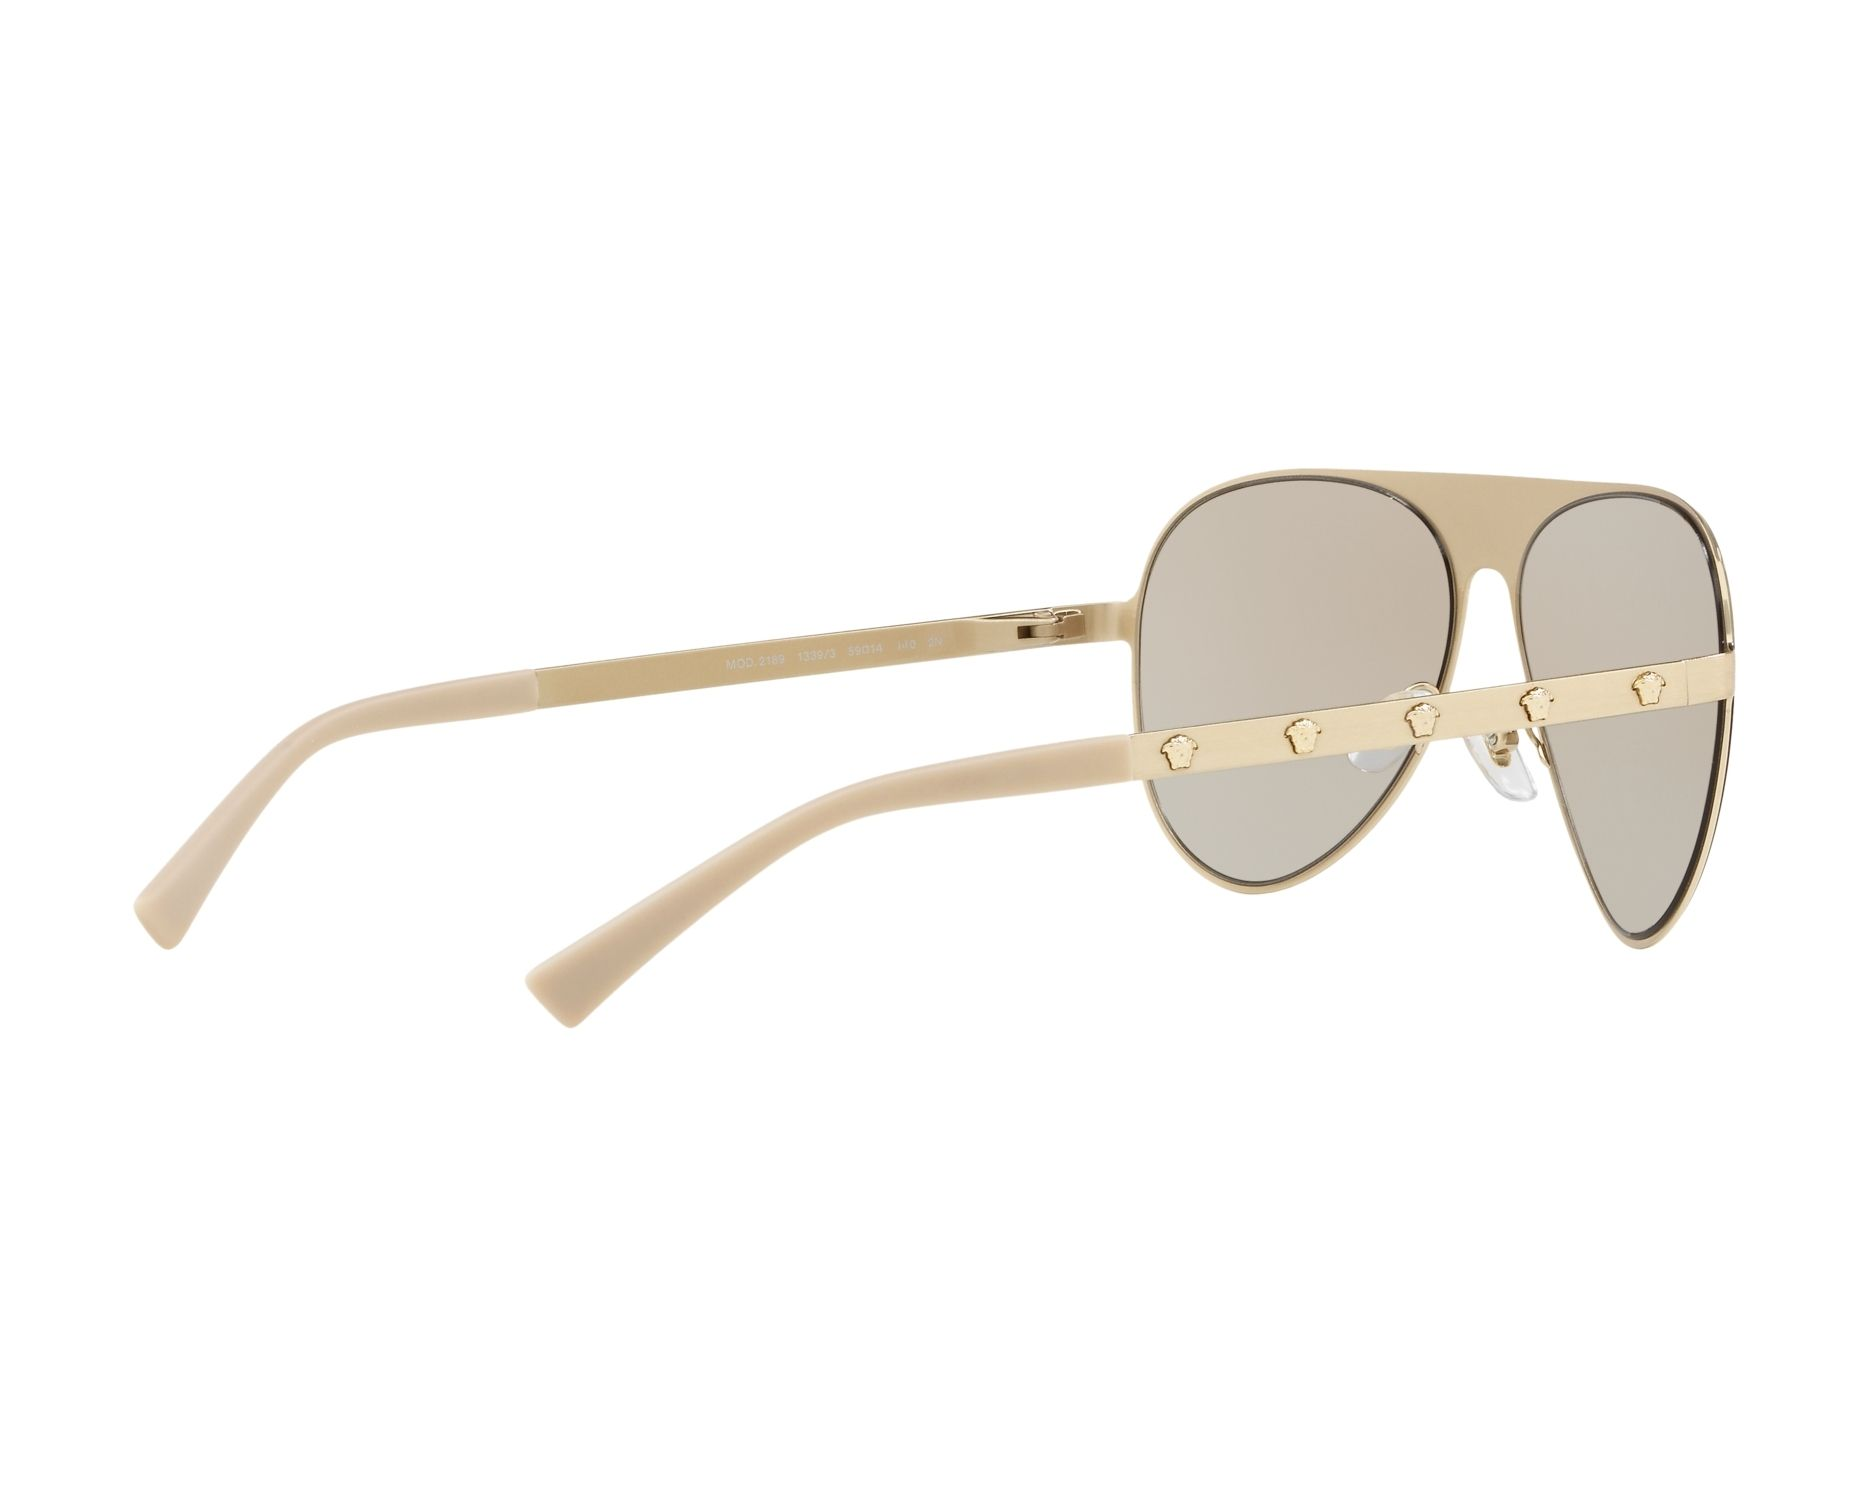 503b73fe7490 Sunglasses Versace VE-2189 1339 3 59-14 Gold 360 degree view 9